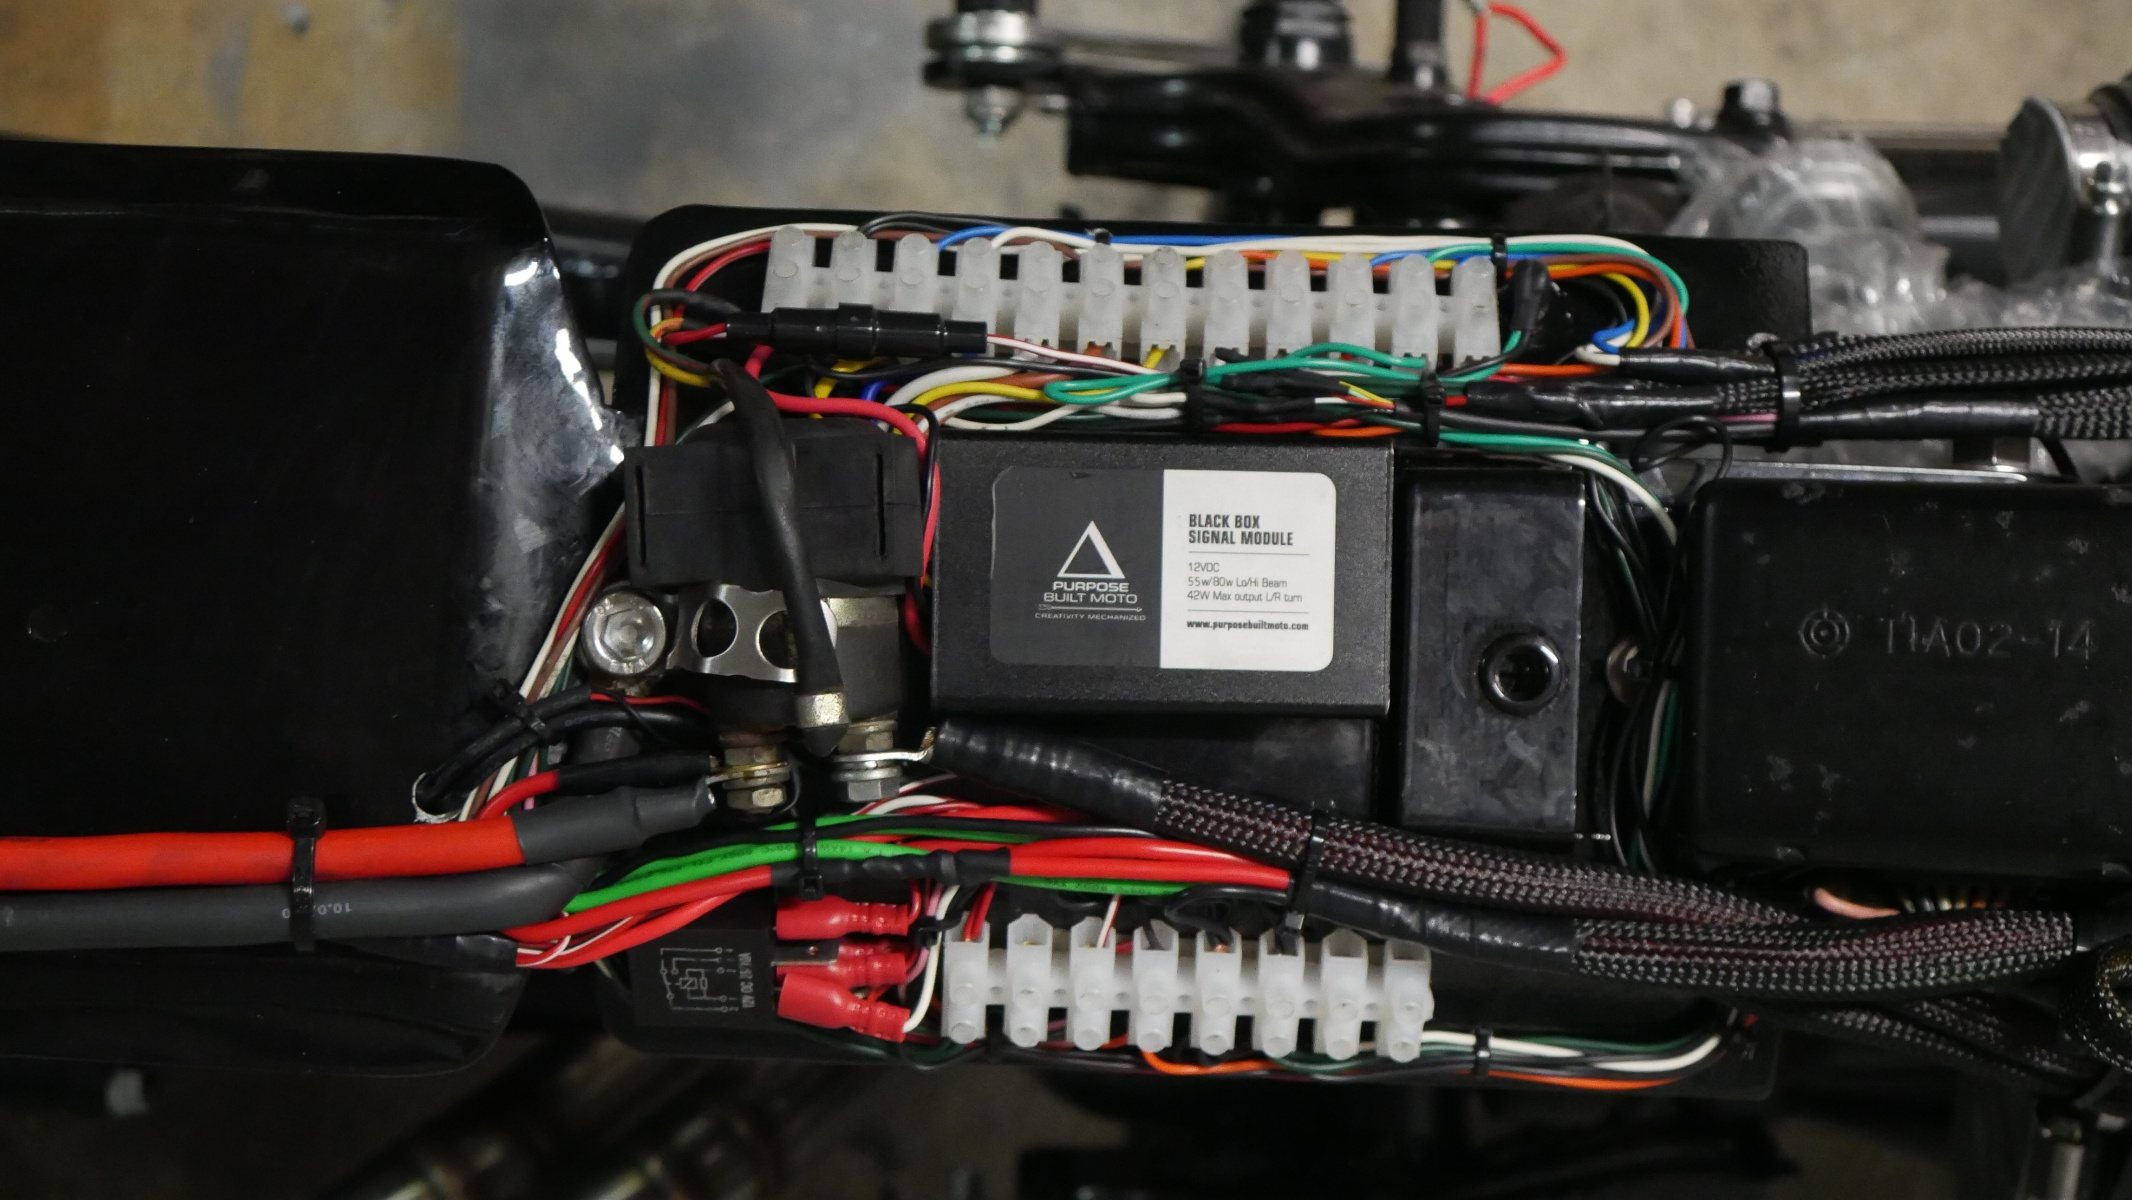 Top 5 wiring mistakes to avoid when wiring your custom bike. Keep It Clean Wiring Diagrams Relays on